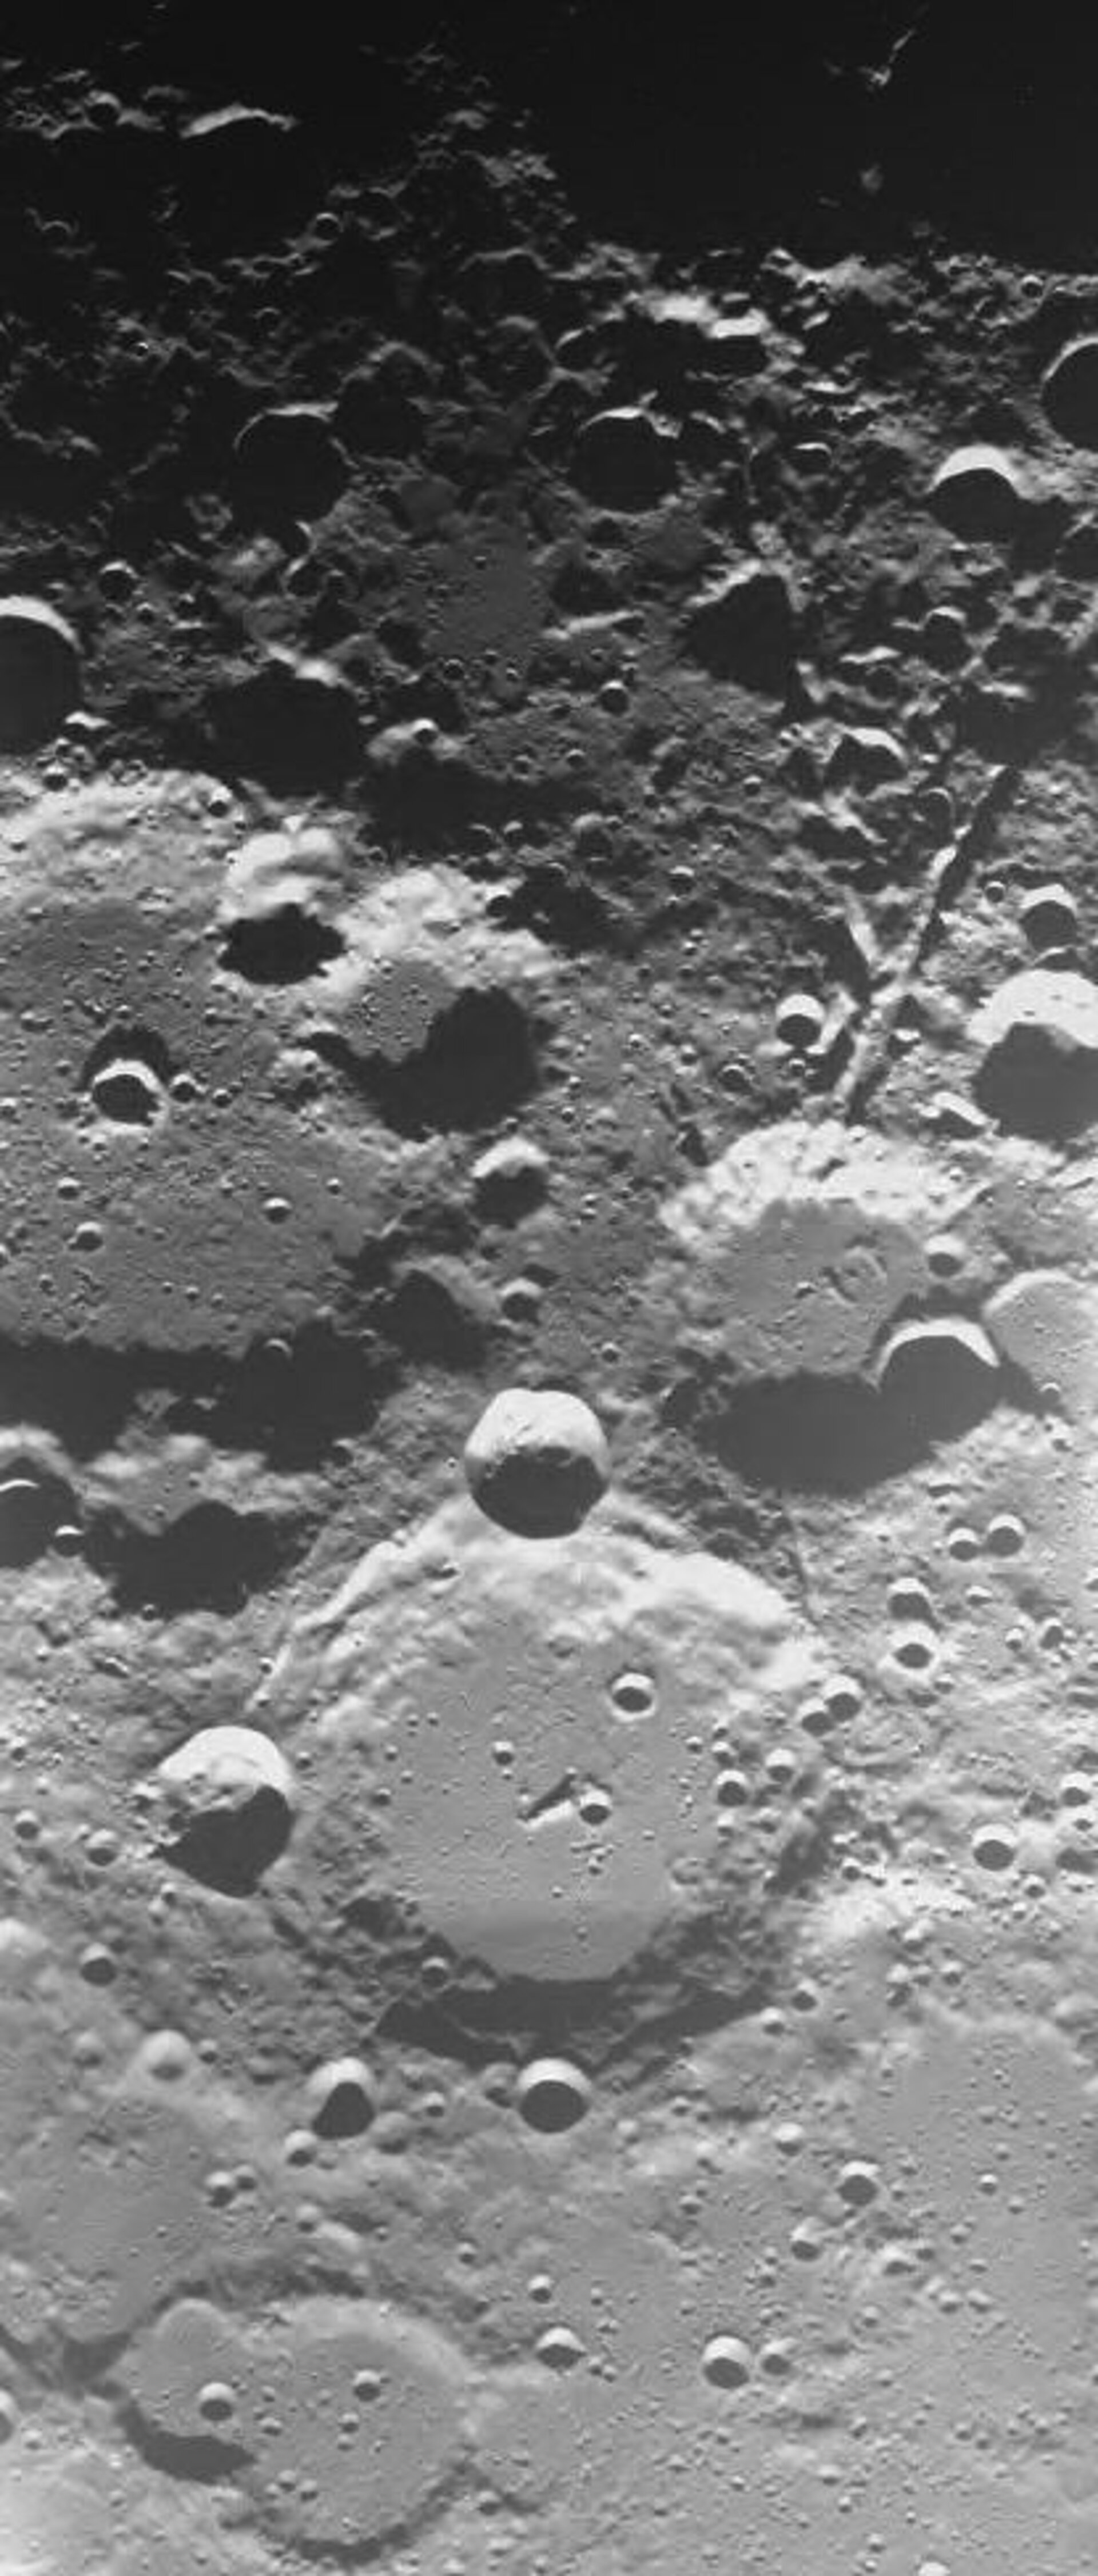 Lunar craters Brianchon and Pascal